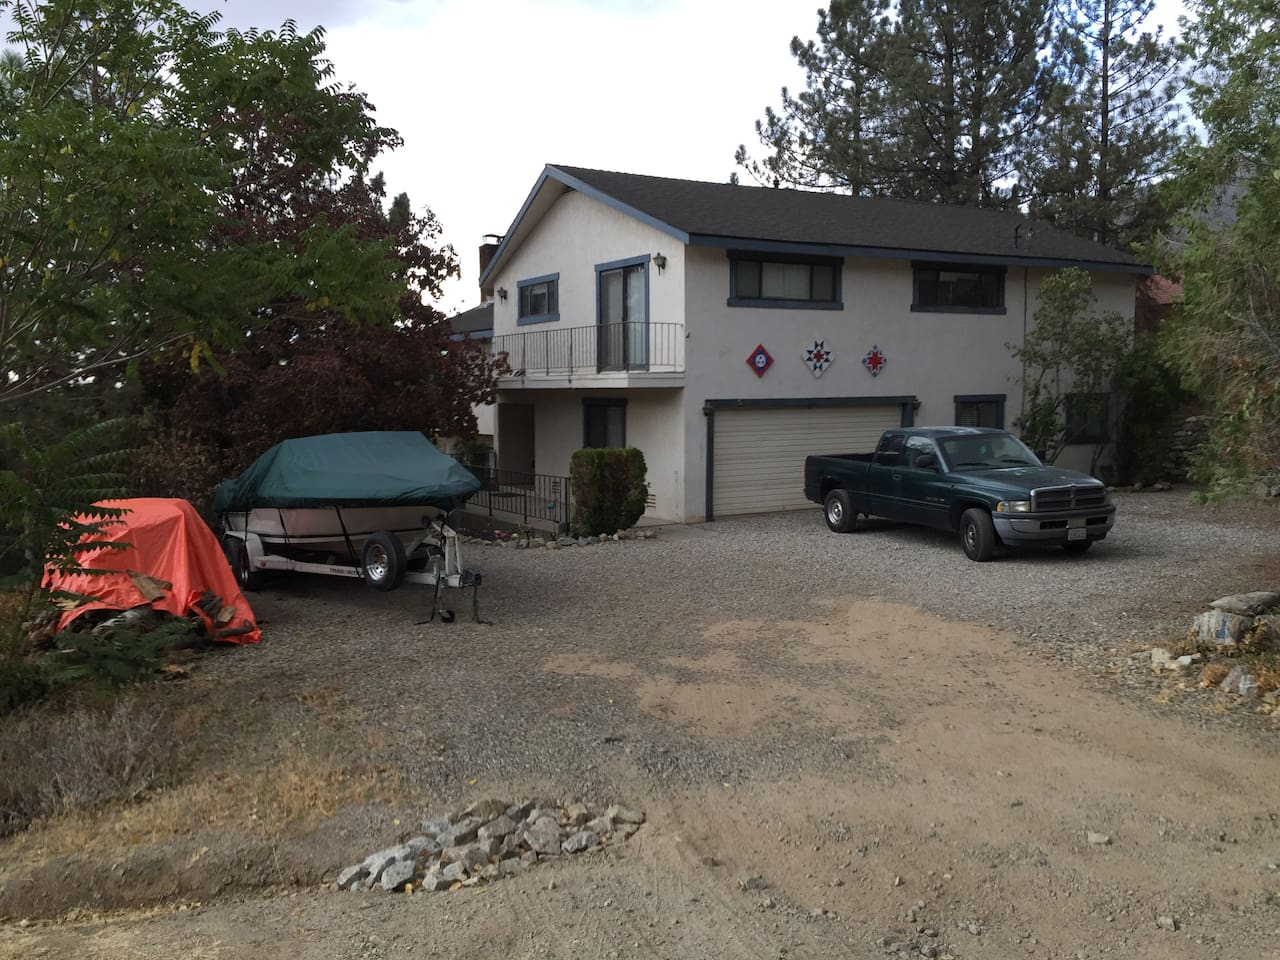 Our home is the 3rd house on the left on Encino trail. The front door has a green light.